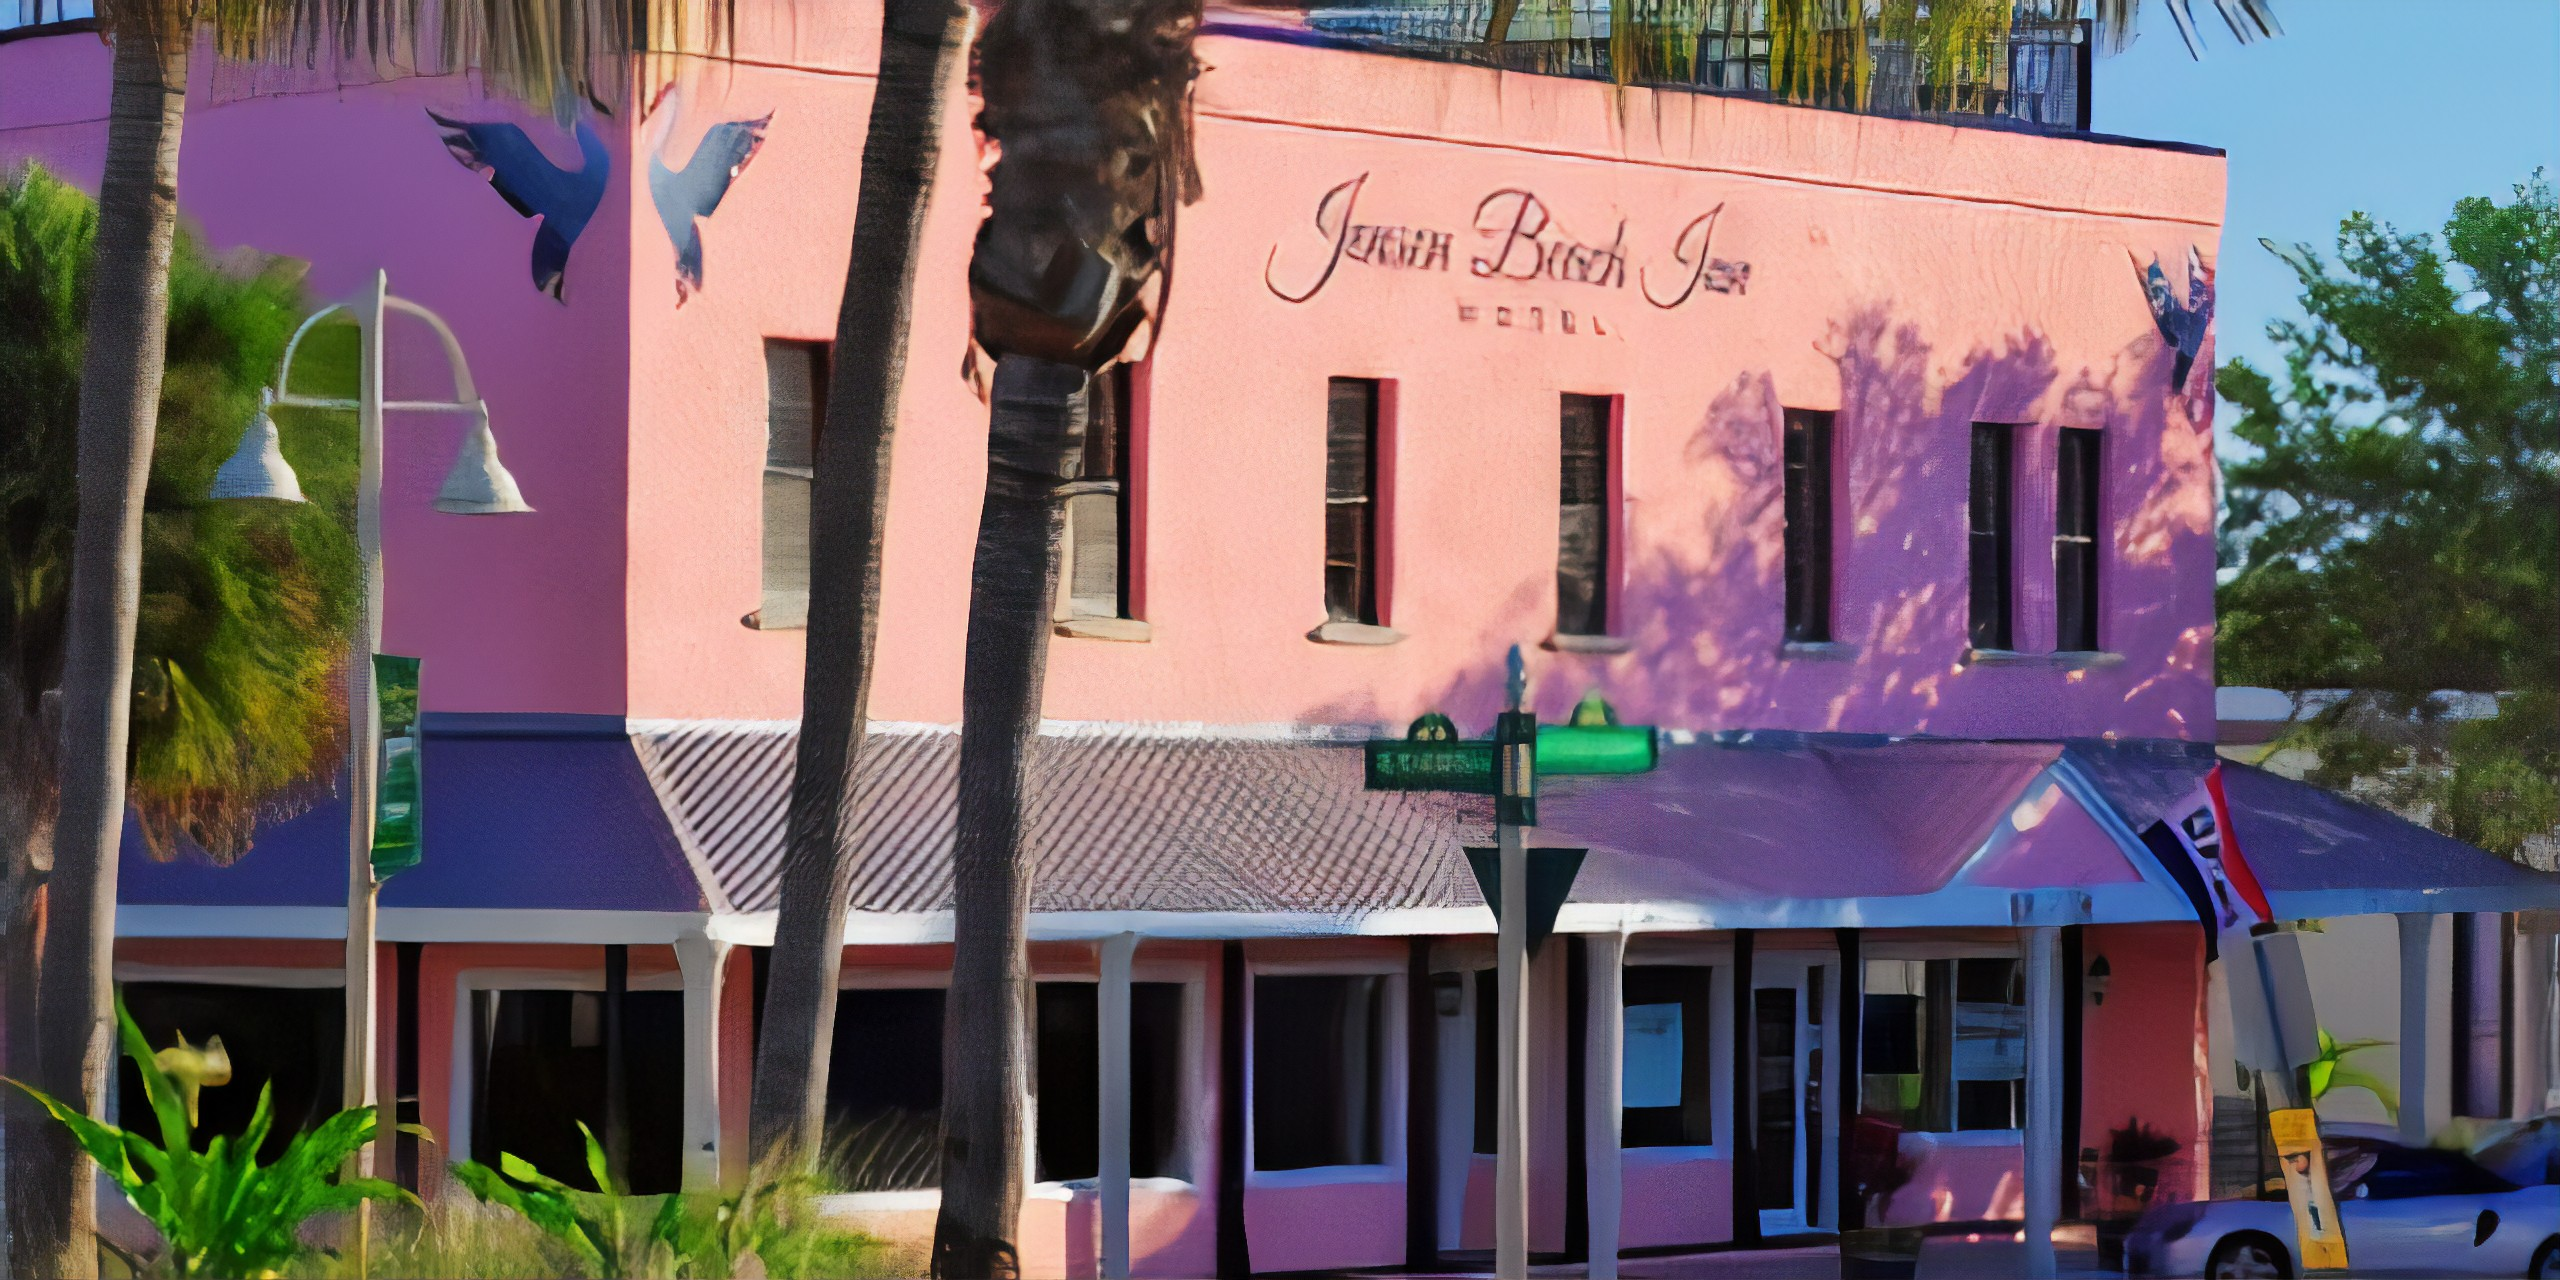 A store front at day at Jensen Beach Inn.